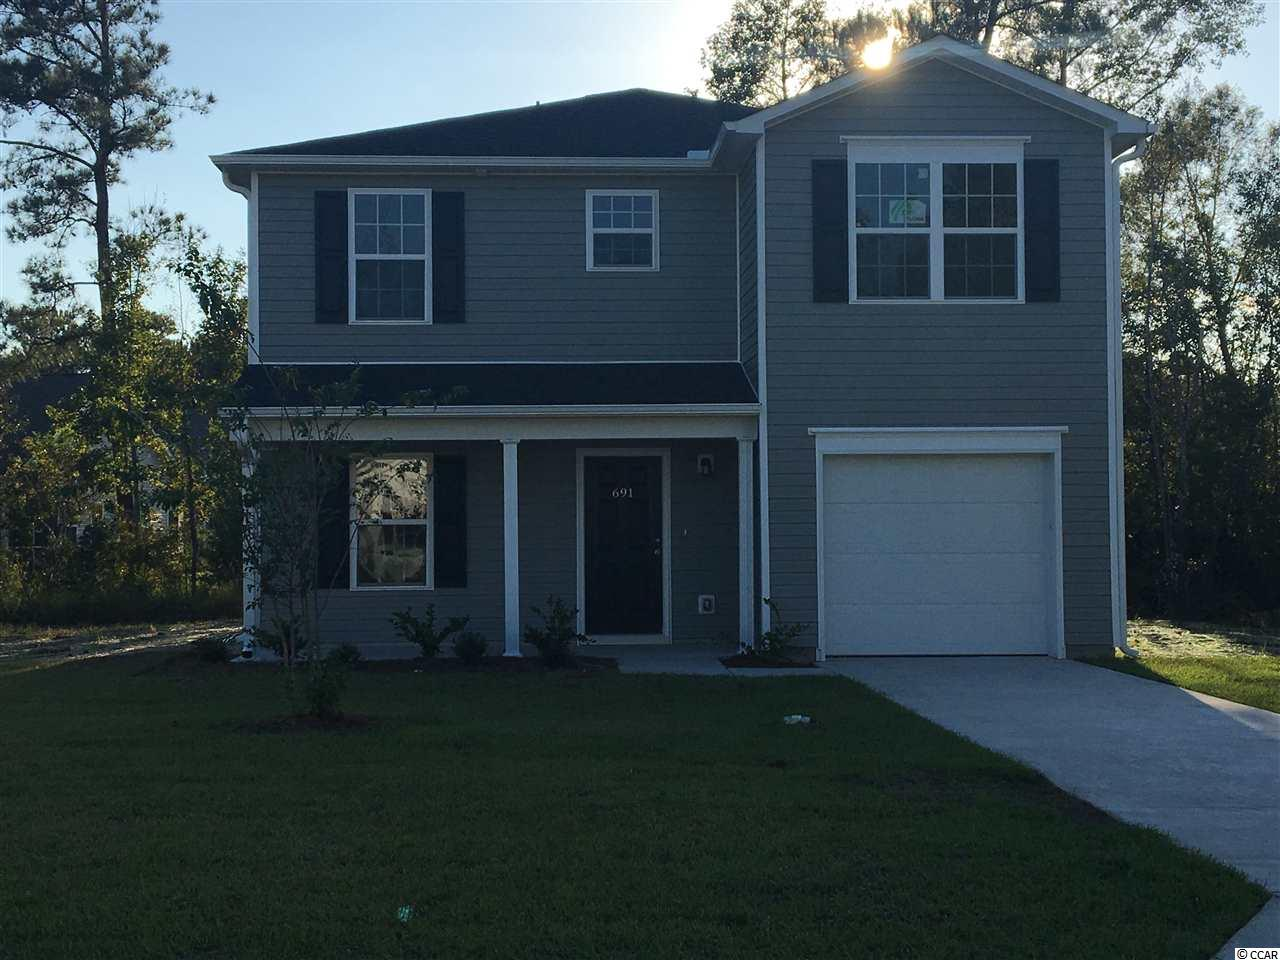 Single Family Home for Sale at 691 NW Callant Drive SE 691 NW Callant Drive SE Little River, South Carolina 29566 United States